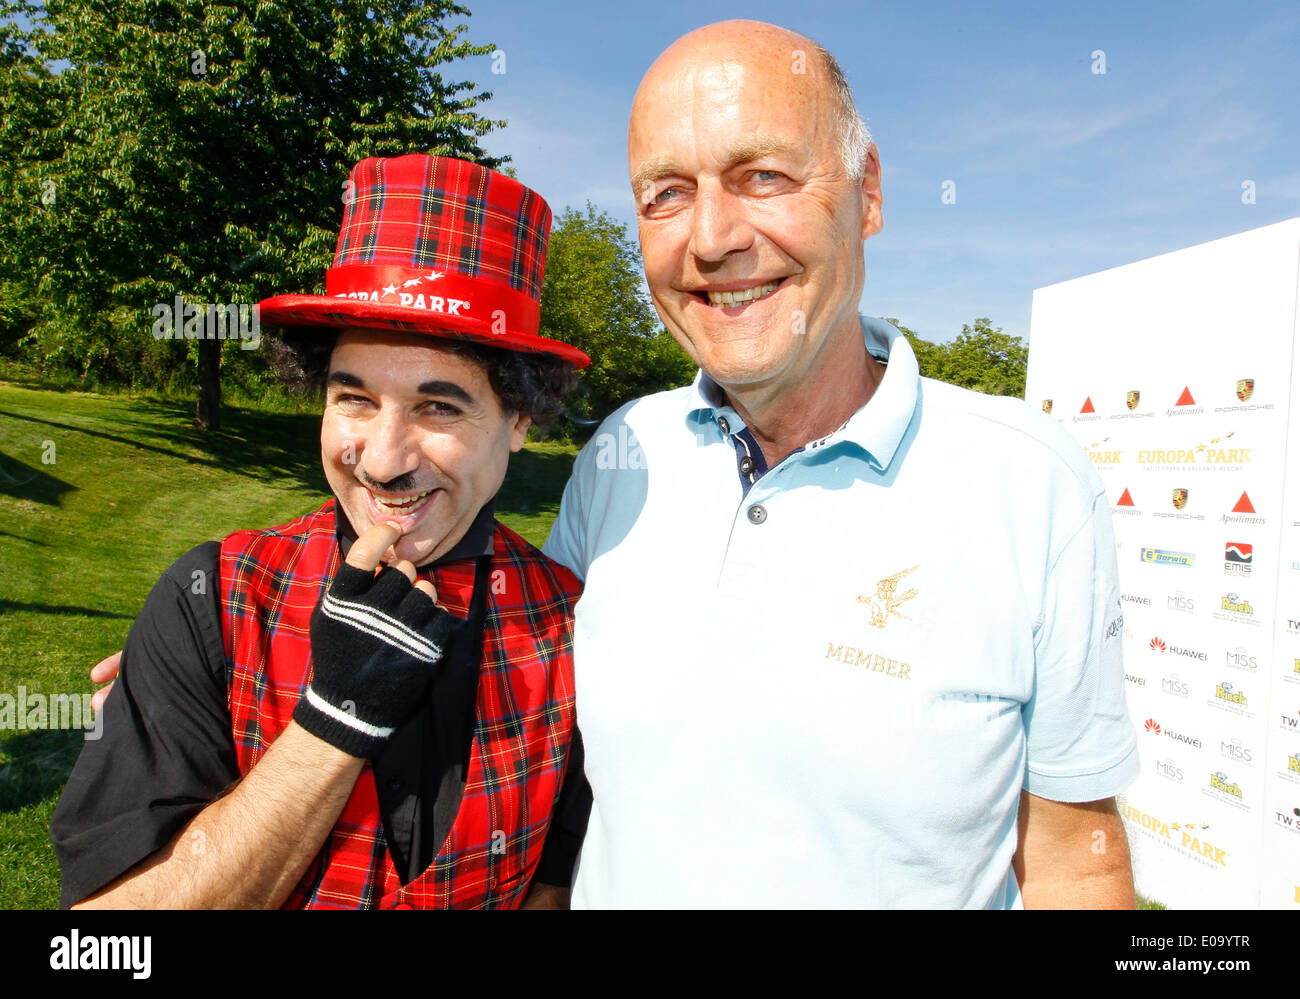 Herbolzheim, Germany - May 5, 2014: Eagles Charity Golf Cup and Gala at Golfclub Breisgau and Europa Park, Rust with Politician Laurenz Meyer and Charly Credit:  dpa picture alliance/Alamy Live News - Stock Image